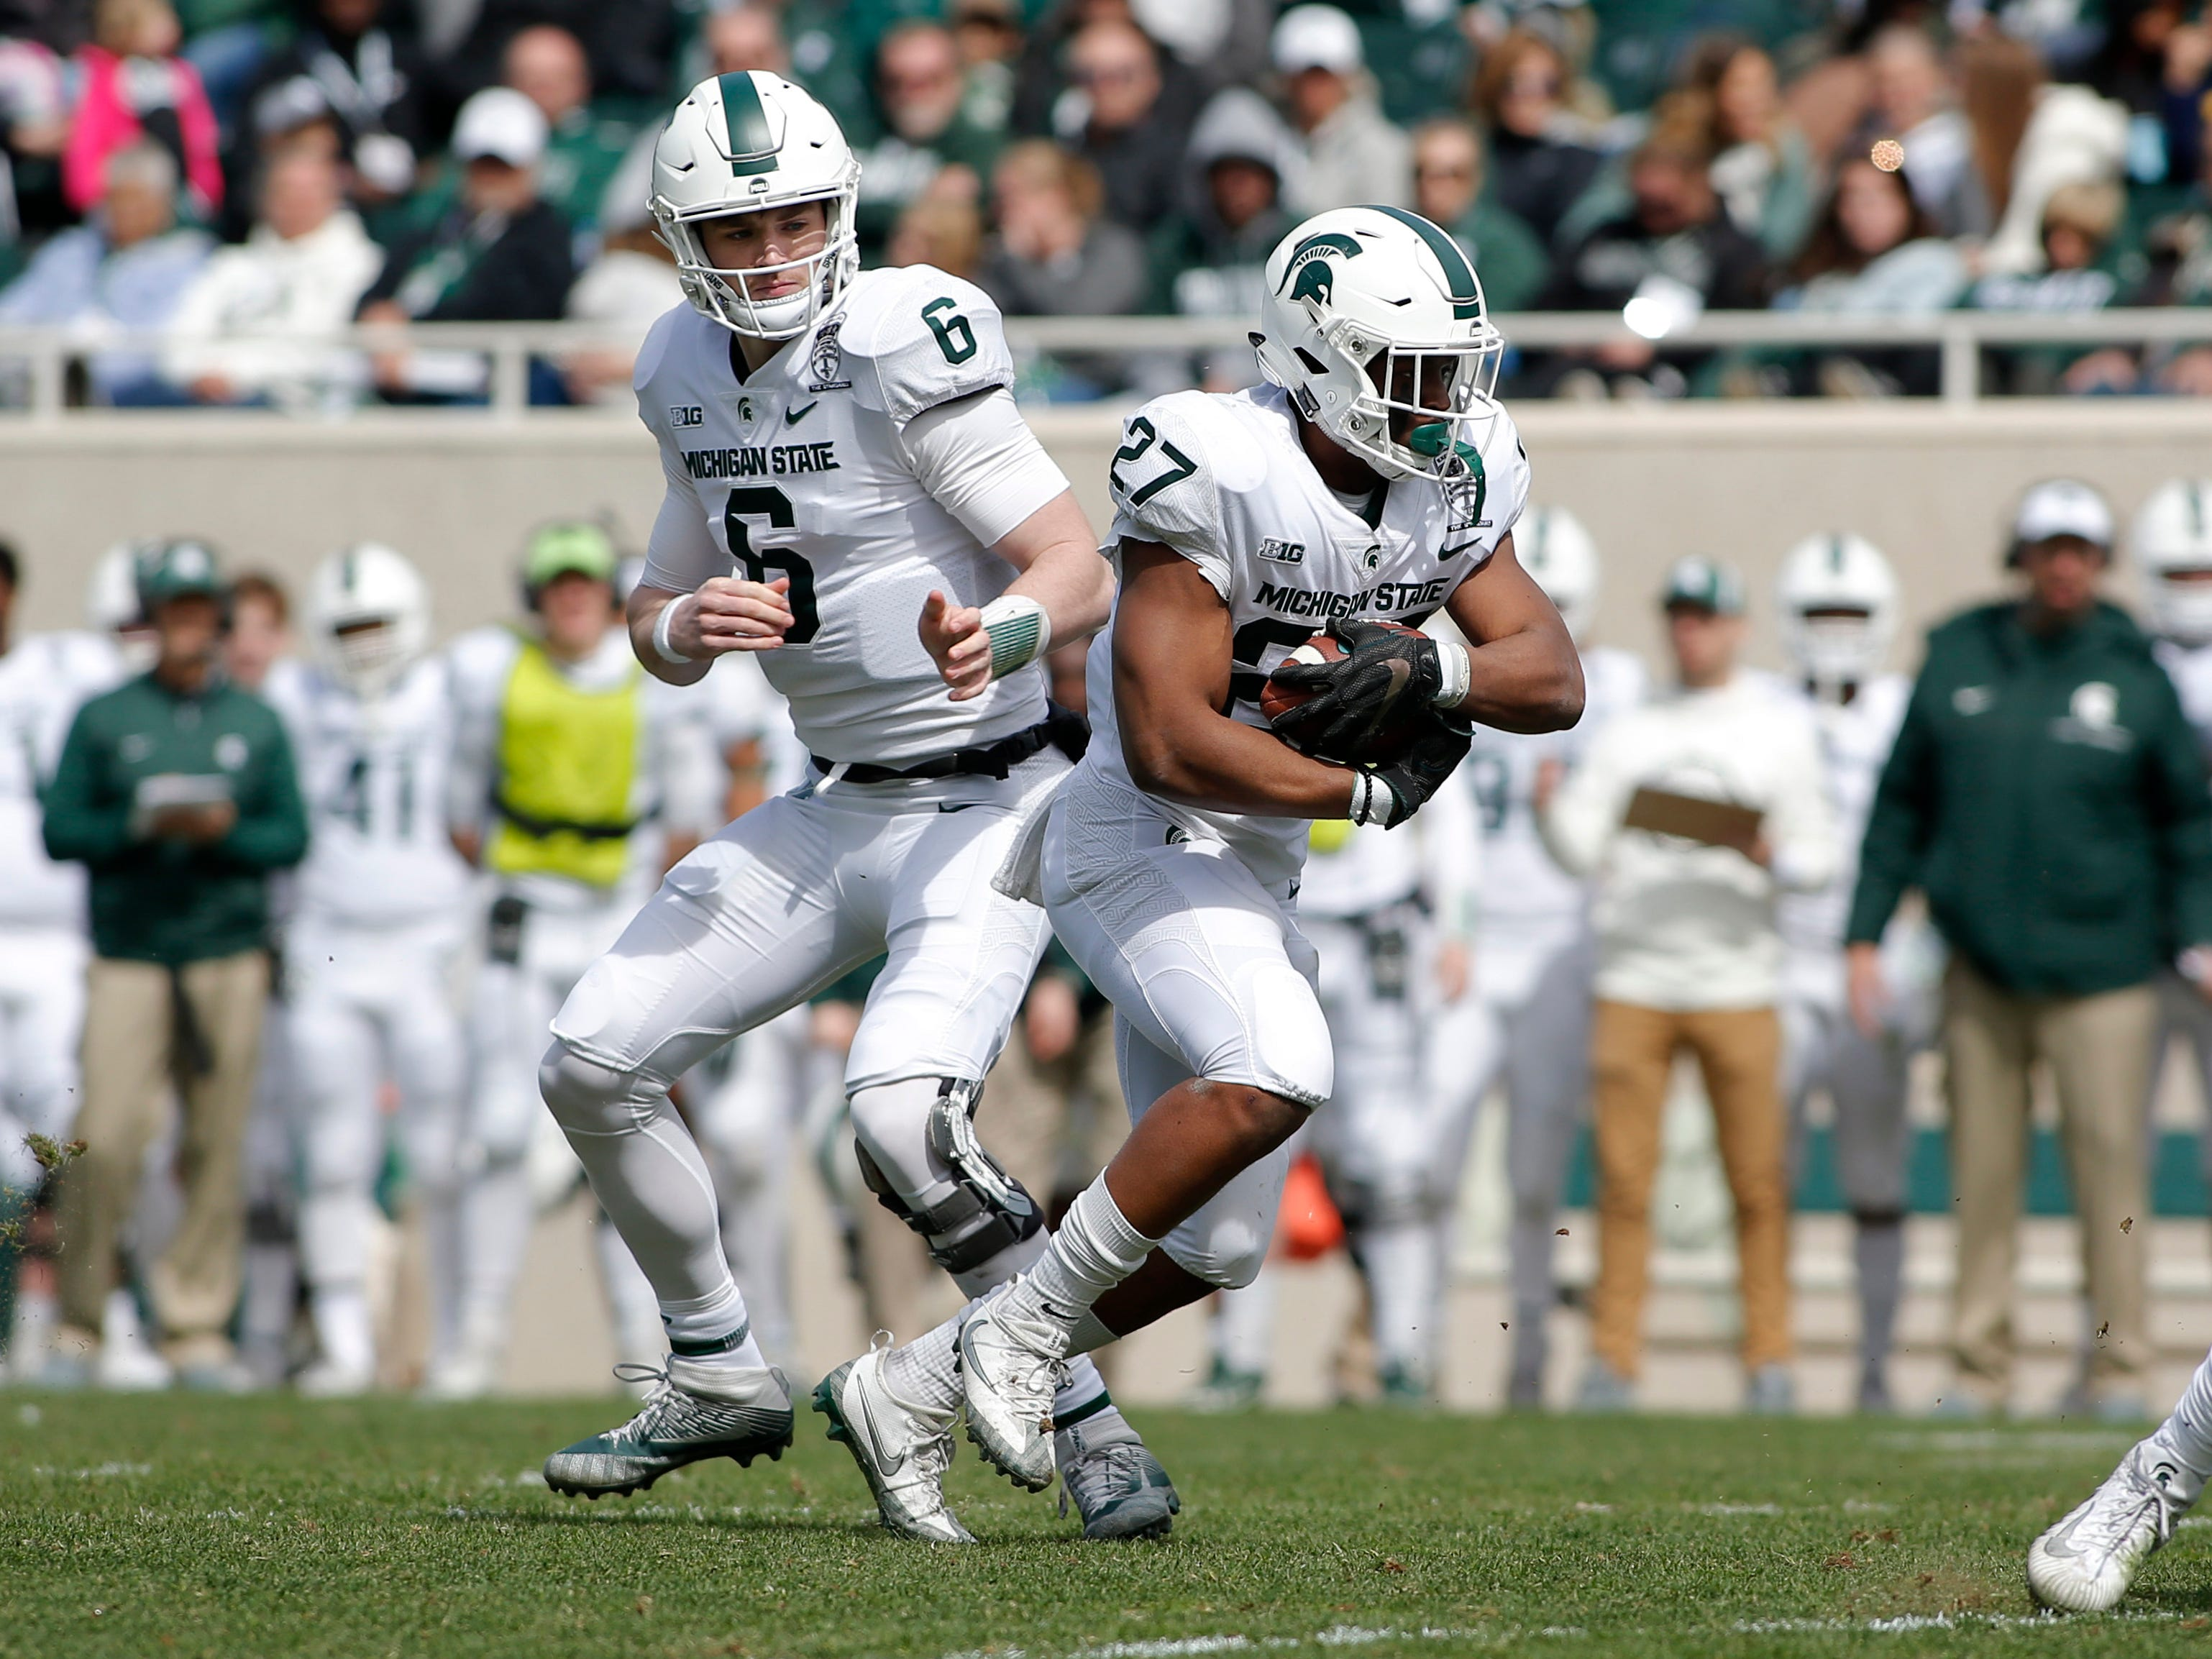 Michigan State running back Weston Bridges, right, takes a handoff from quarterback Theo Day (6) during an NCAA college football spring scrimmage game, Saturday, April 13, 2019, in East Lansing, Mich. (AP Photo/Al Goldis)